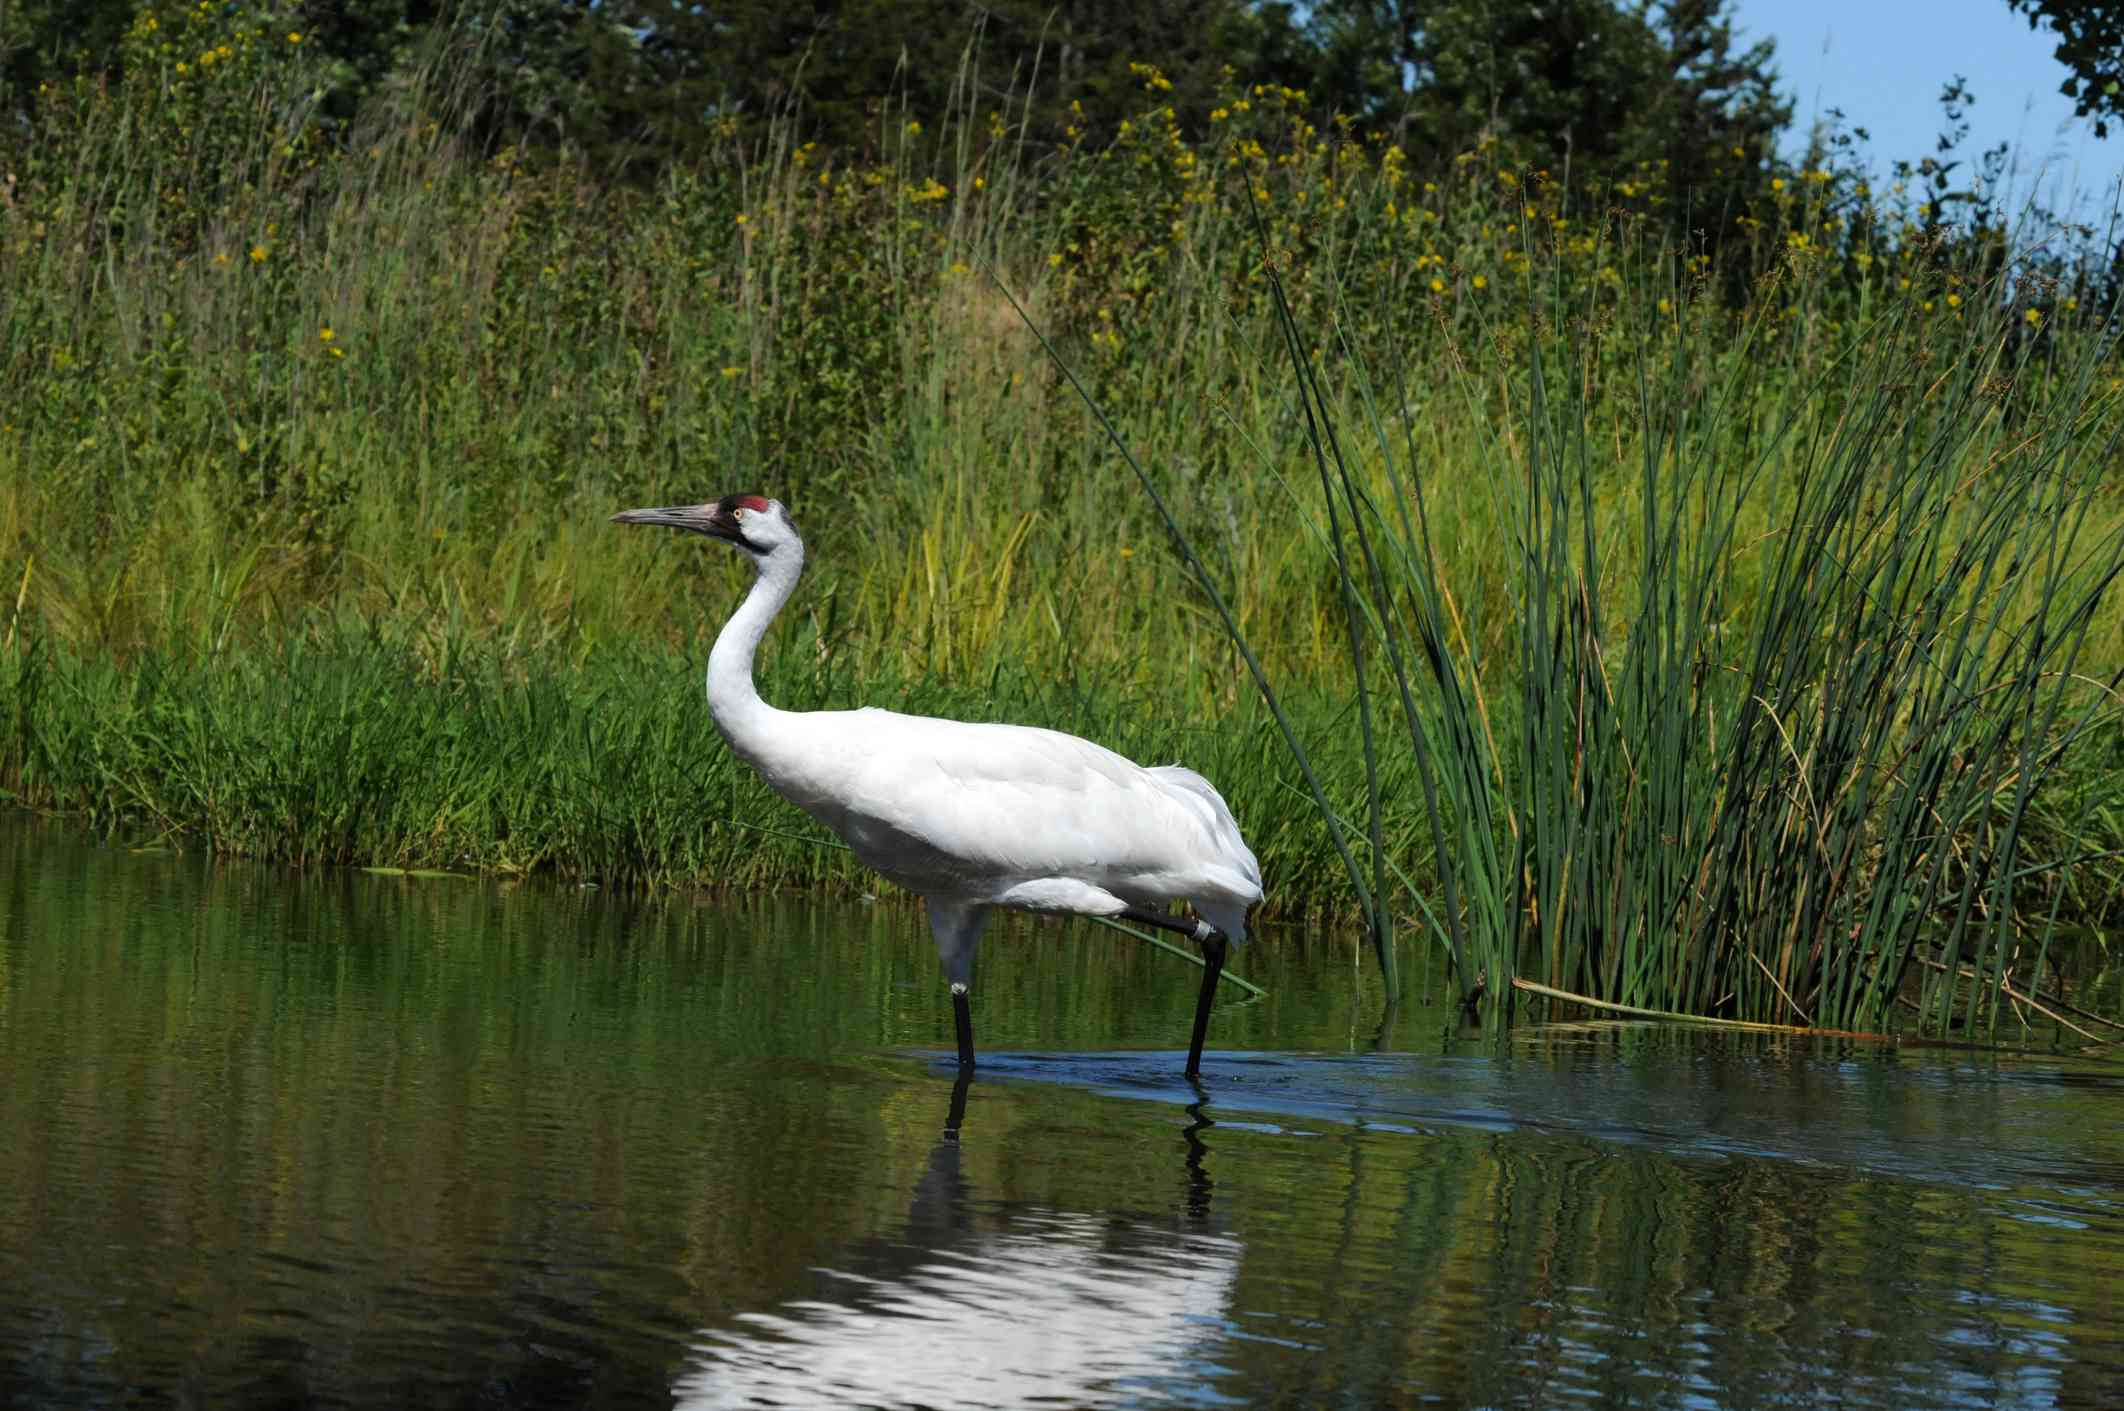 A whooping crane standing in a waterway surrounded by tall green grasses.